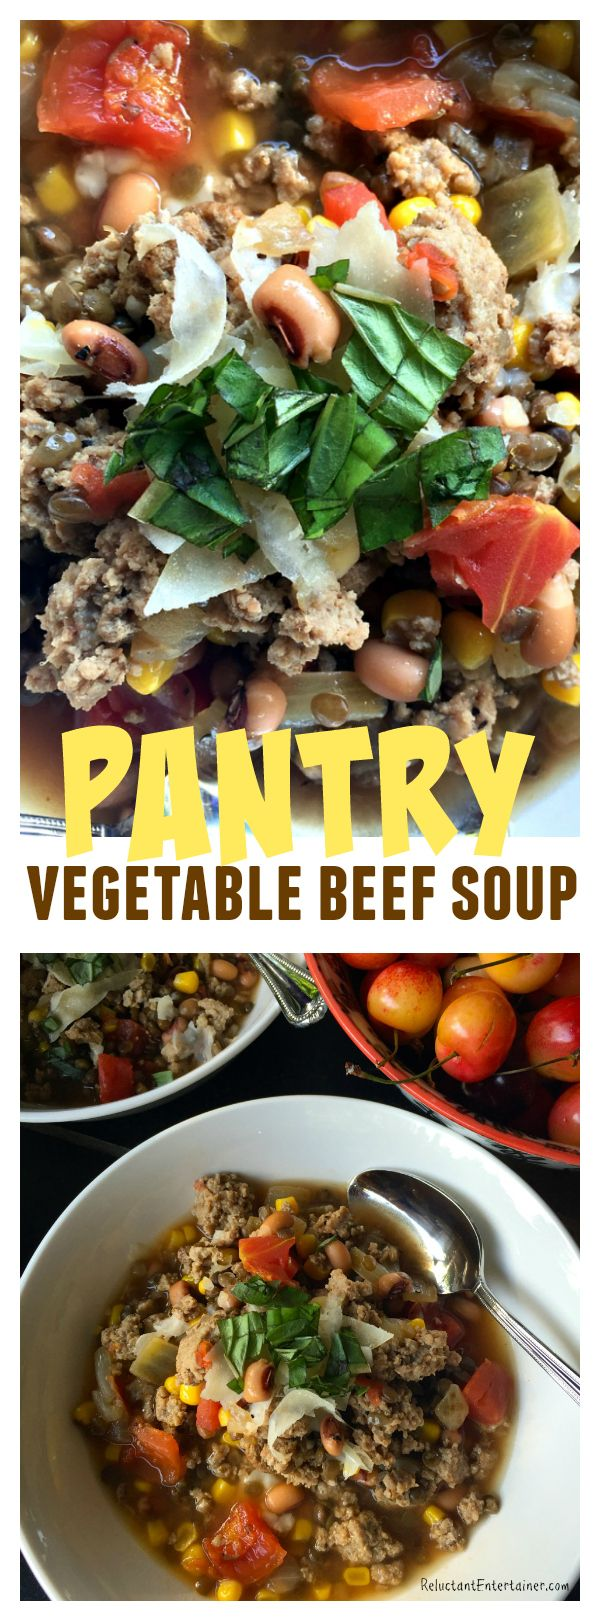 Pantry Vegetable Beef Soup is a simple weeknight meal, easy to make with ingredients stocked in the pantry; add ground beef or turkey and serve -ReluctantEntertainer.com